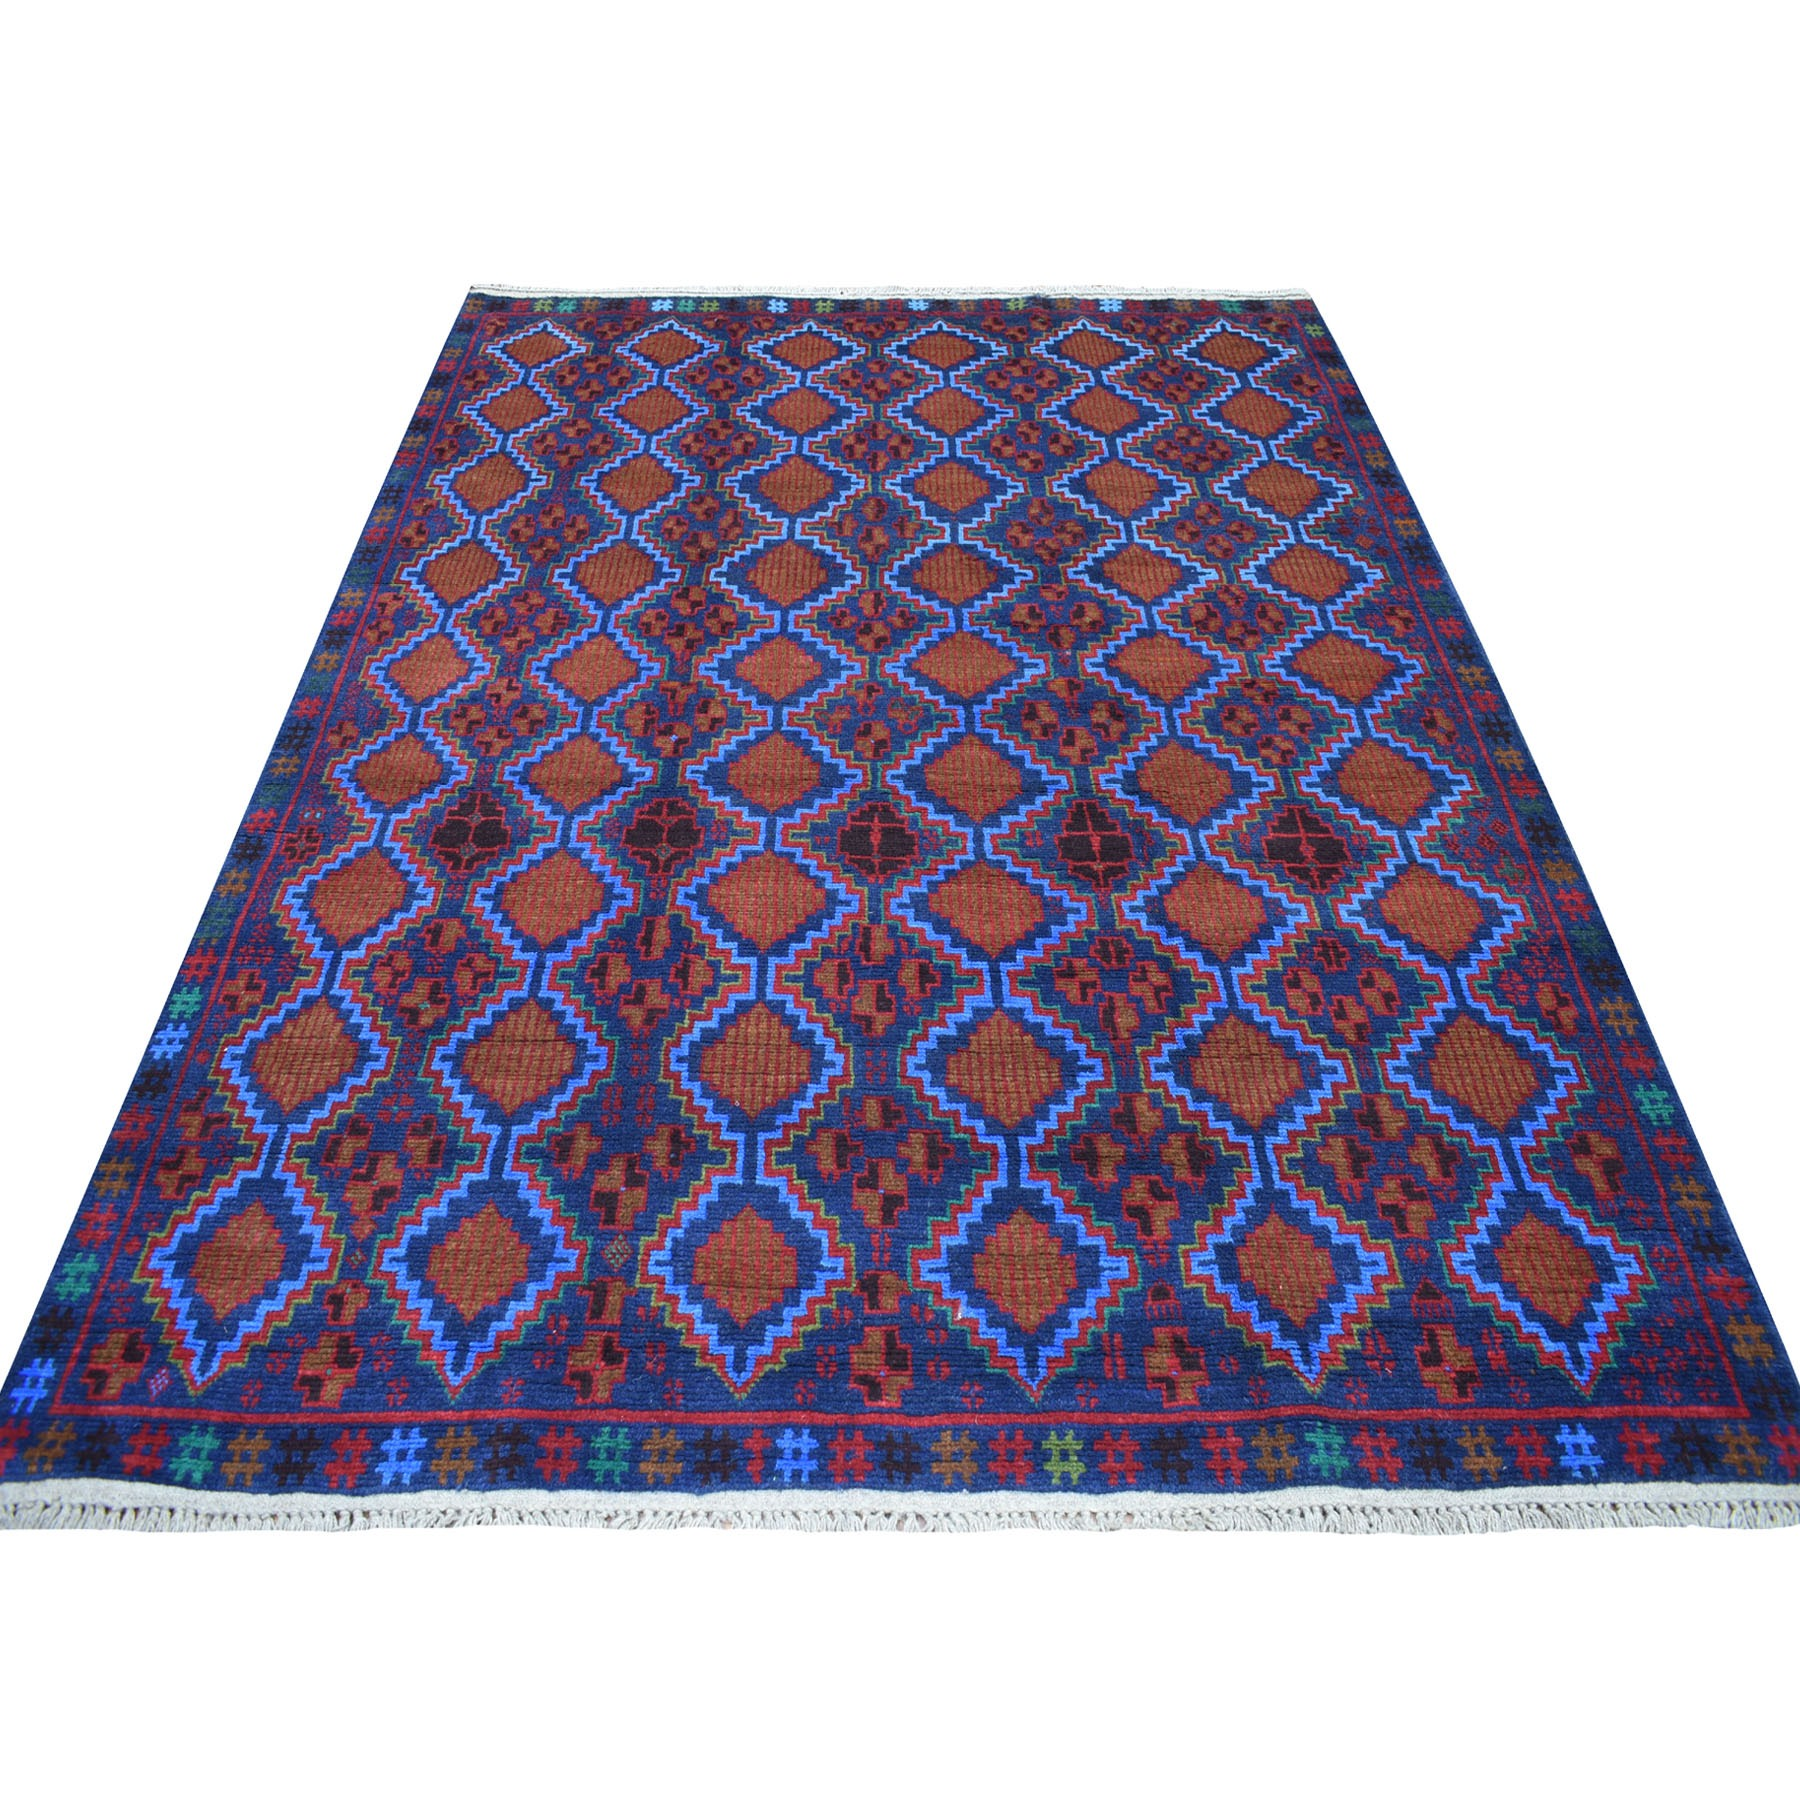 "6'1""x8' Blue Geometric Design Colorful Afghan Baluch Hand Knotted Pure Wool Oriental Rug"